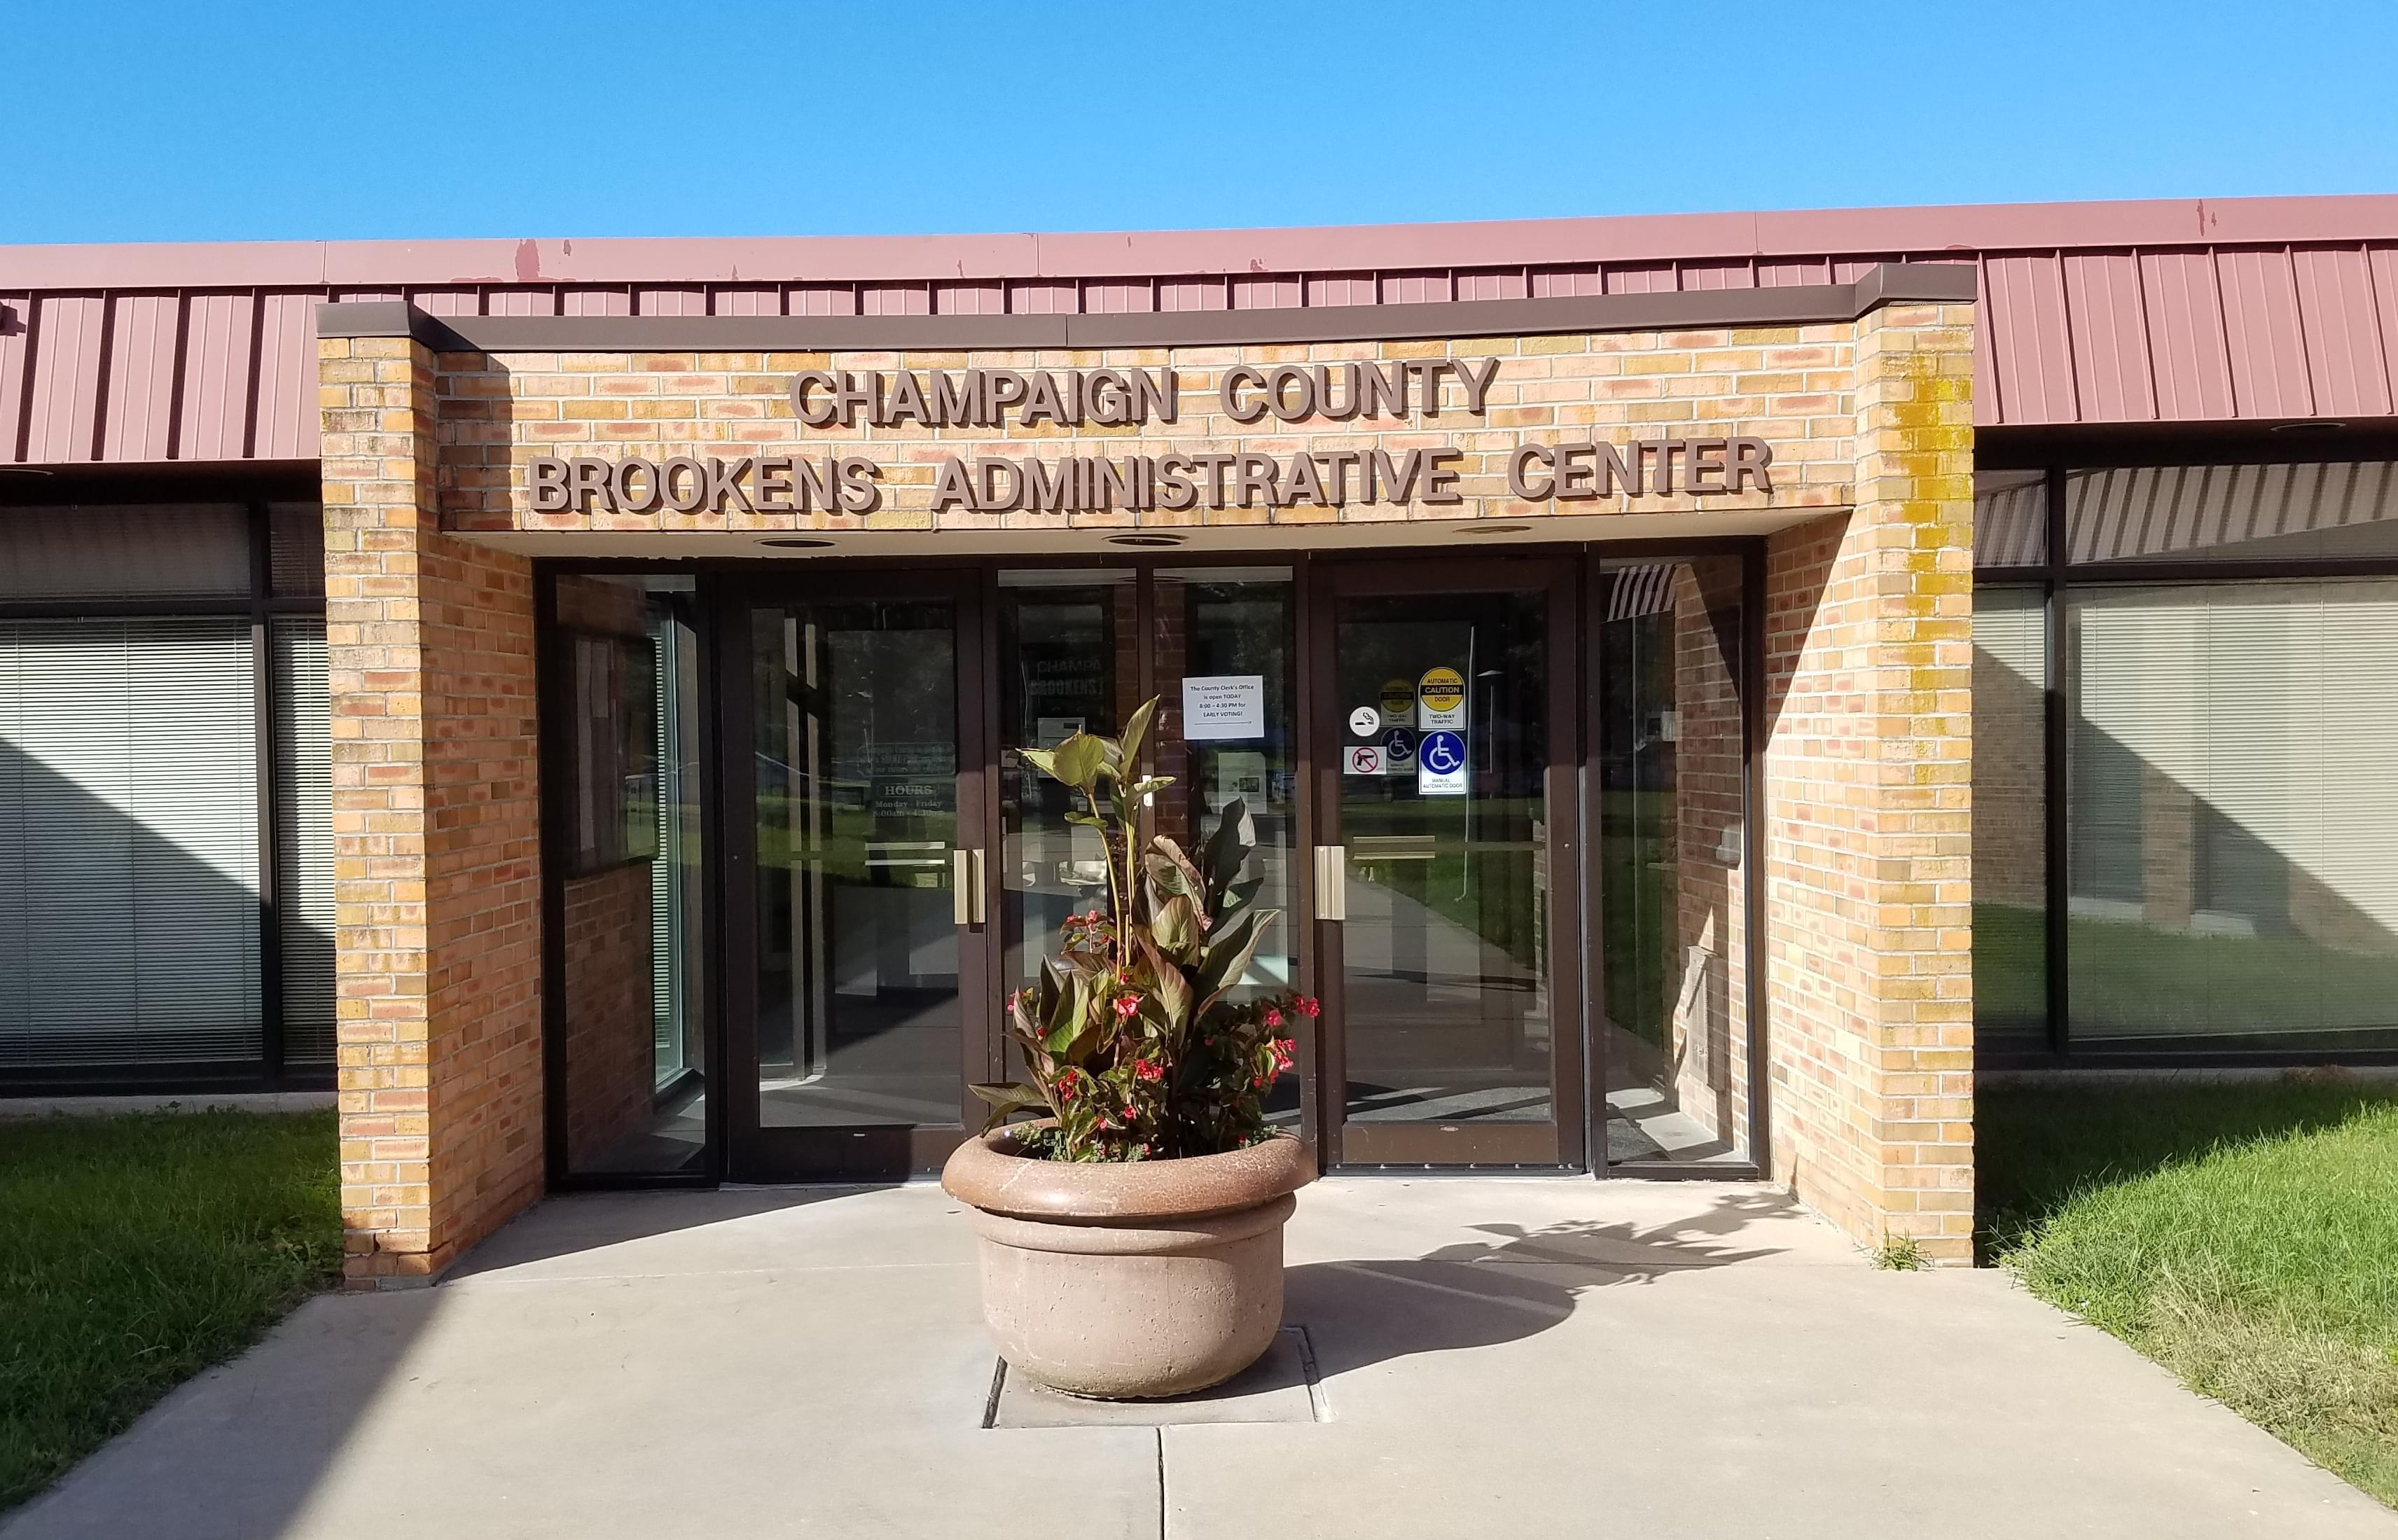 Champaign County Brookens Administrative Center in Urbana, IL.